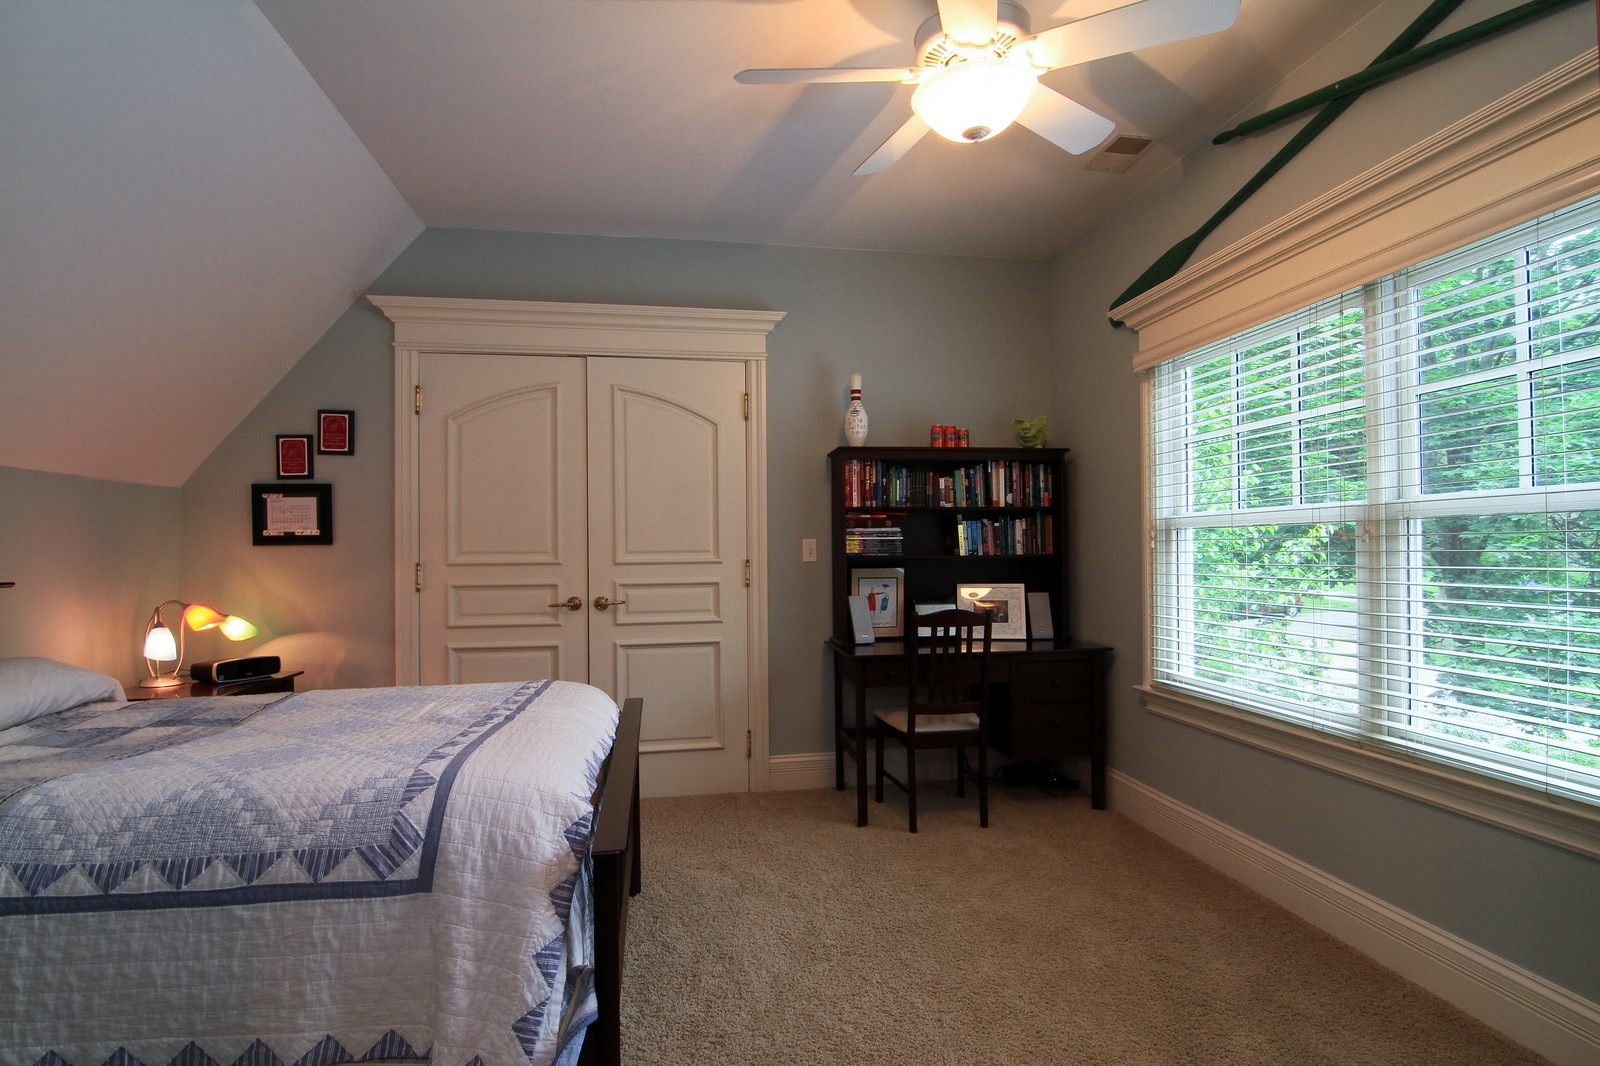 Real Estate Photography - 127 Tuttle, Claredon Hills, IL, 60514 - Bedroom